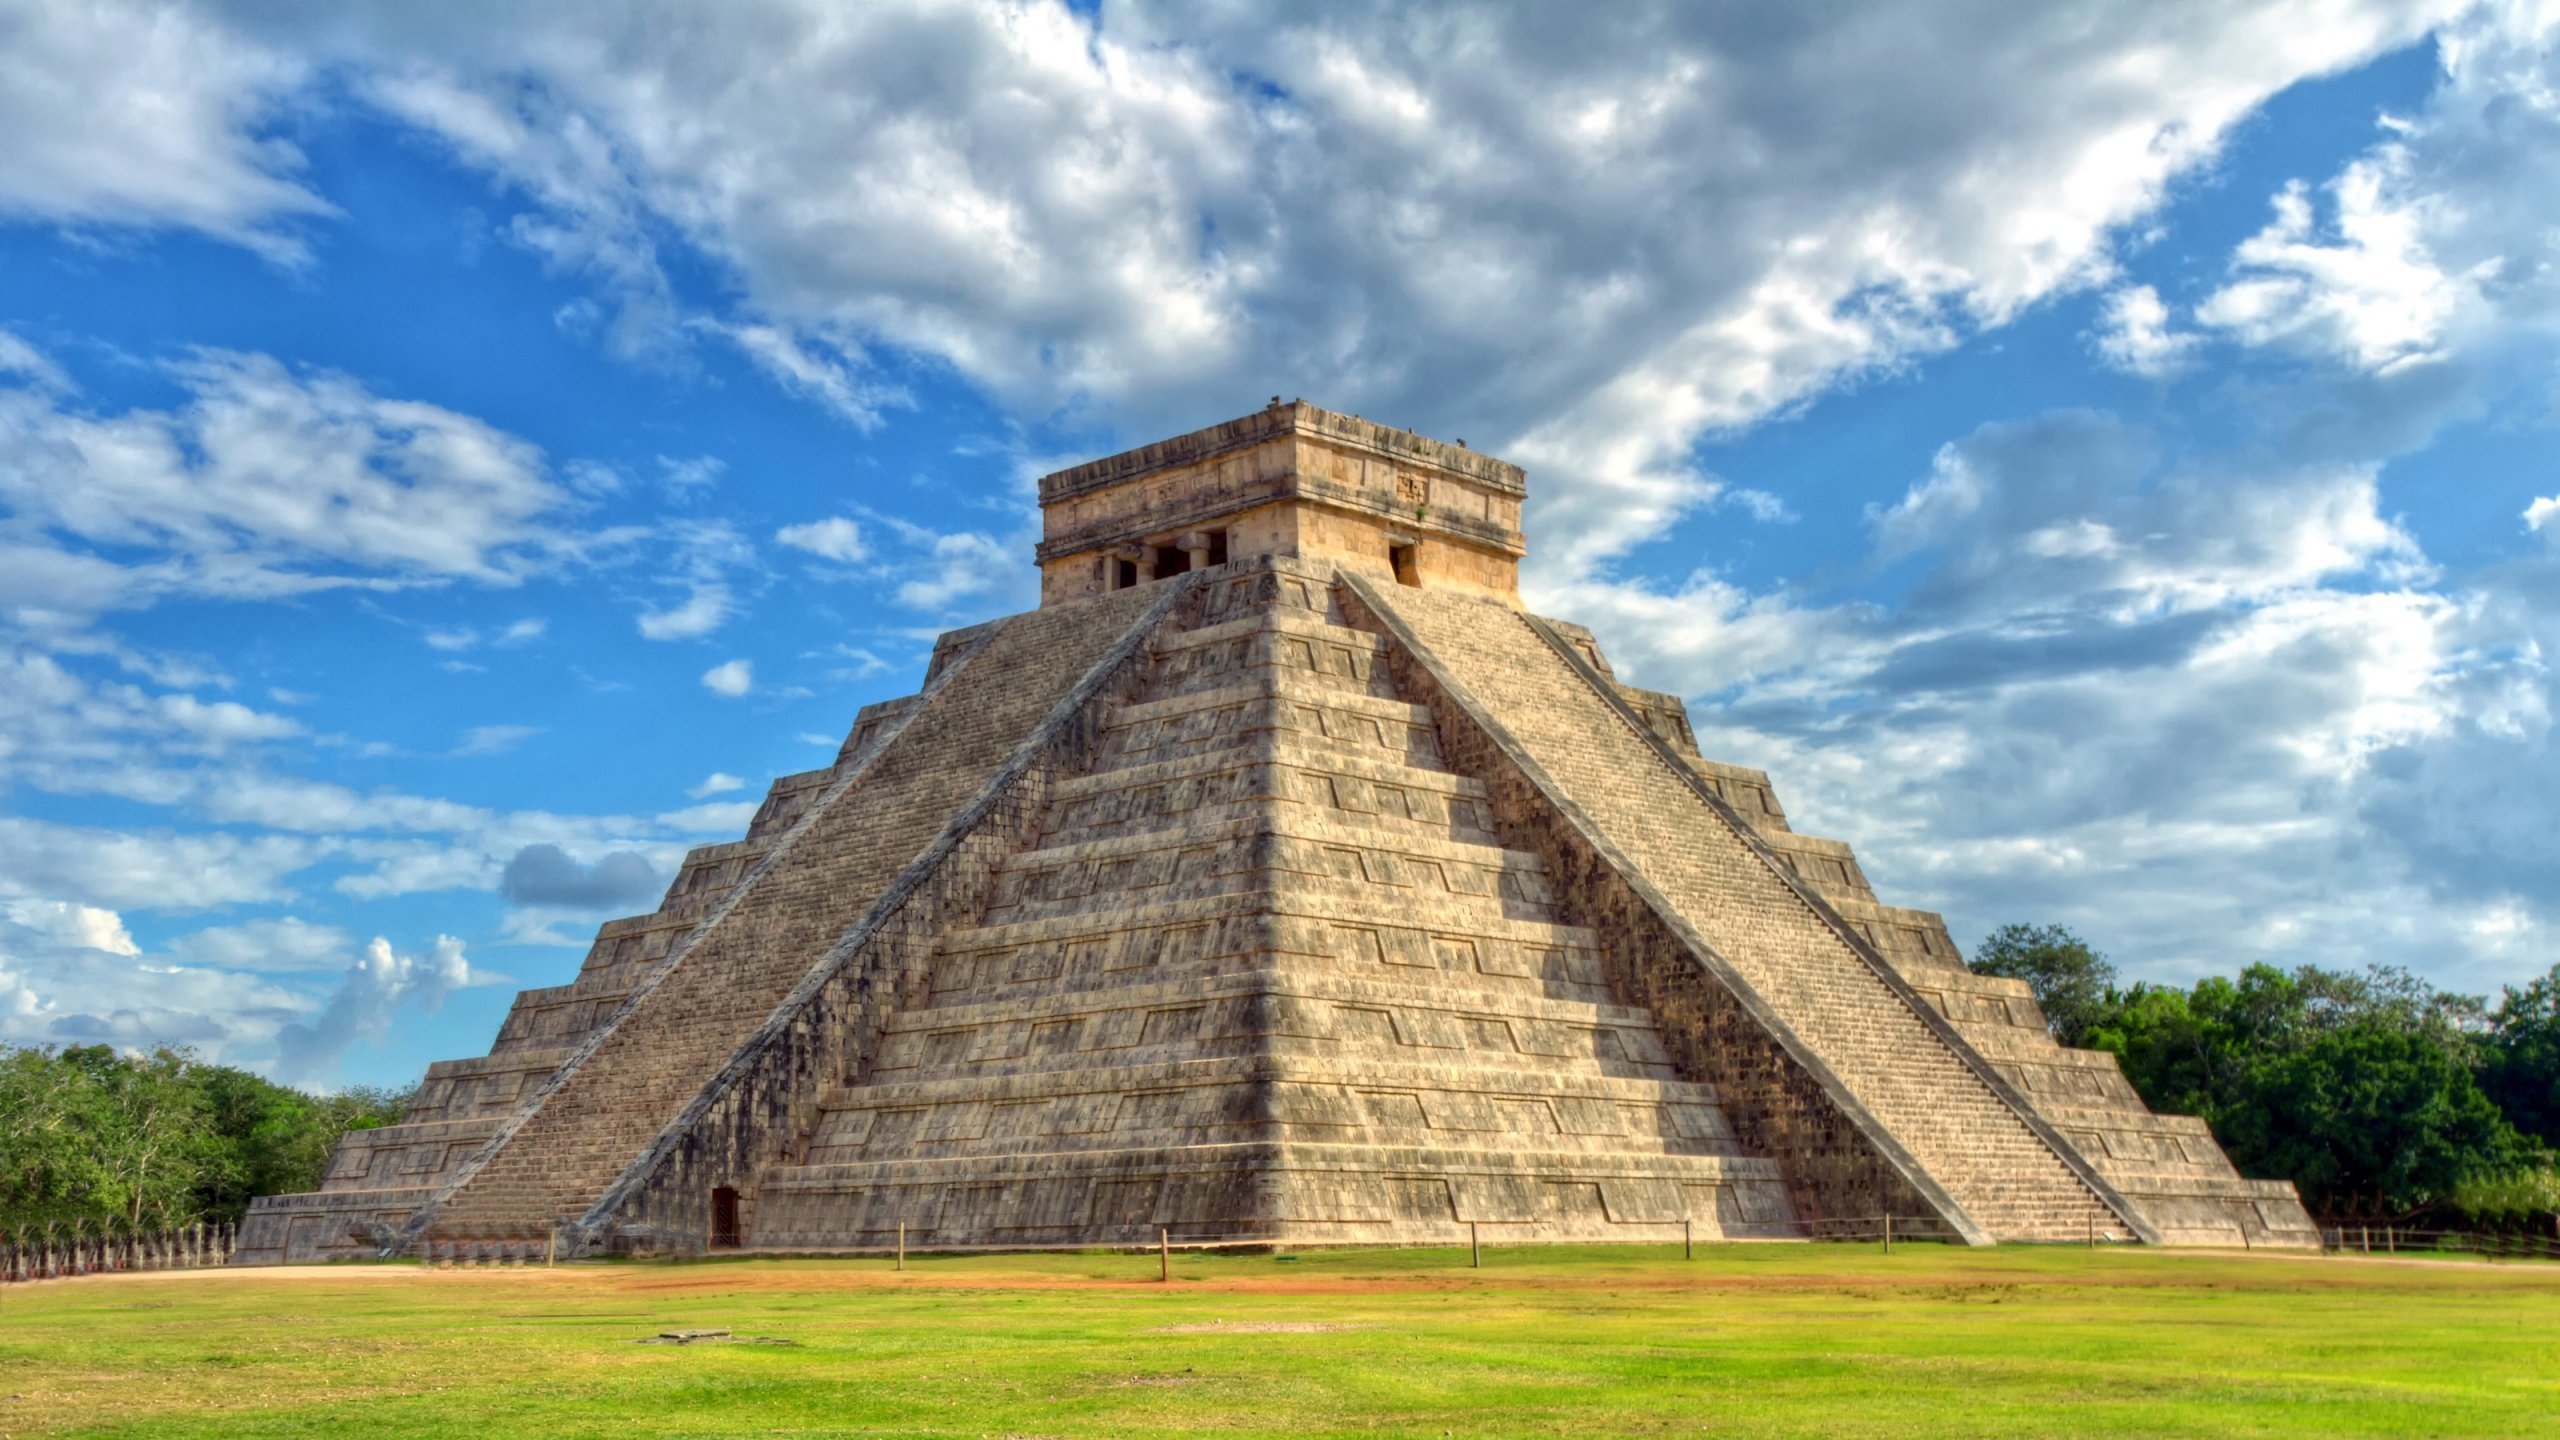 Mayan pyramid of Kukulcan El Castillo in Chichen Itza, Mexico